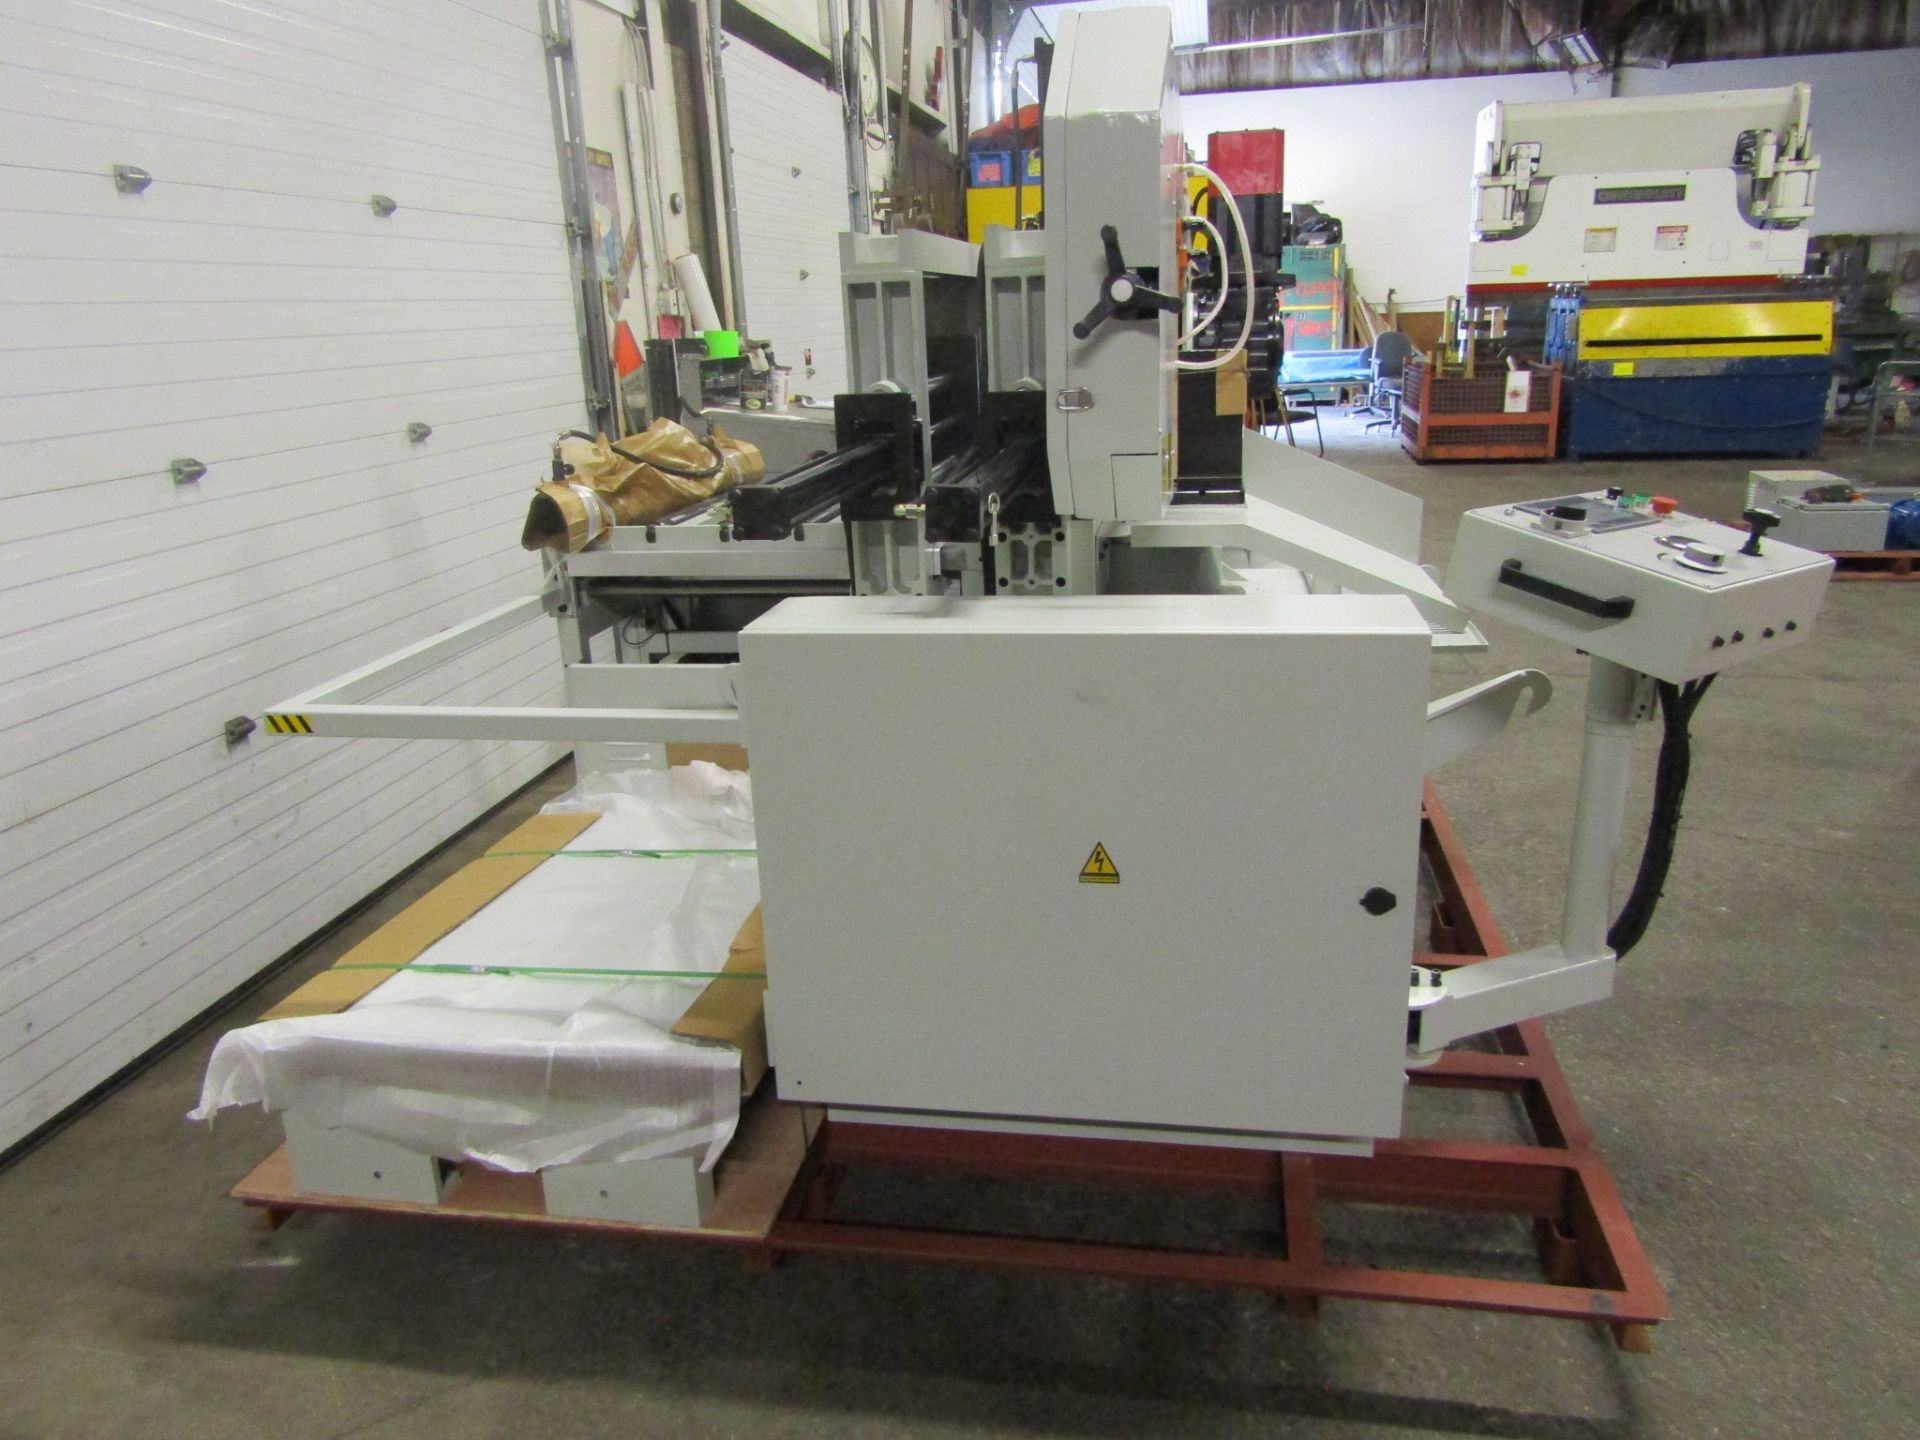 Magnum BSM-2618A Fully Automatic CNC Horizontal Band Saw - 26 X 18 inch HUGE CUTTING CAPACITY - - Image 2 of 3